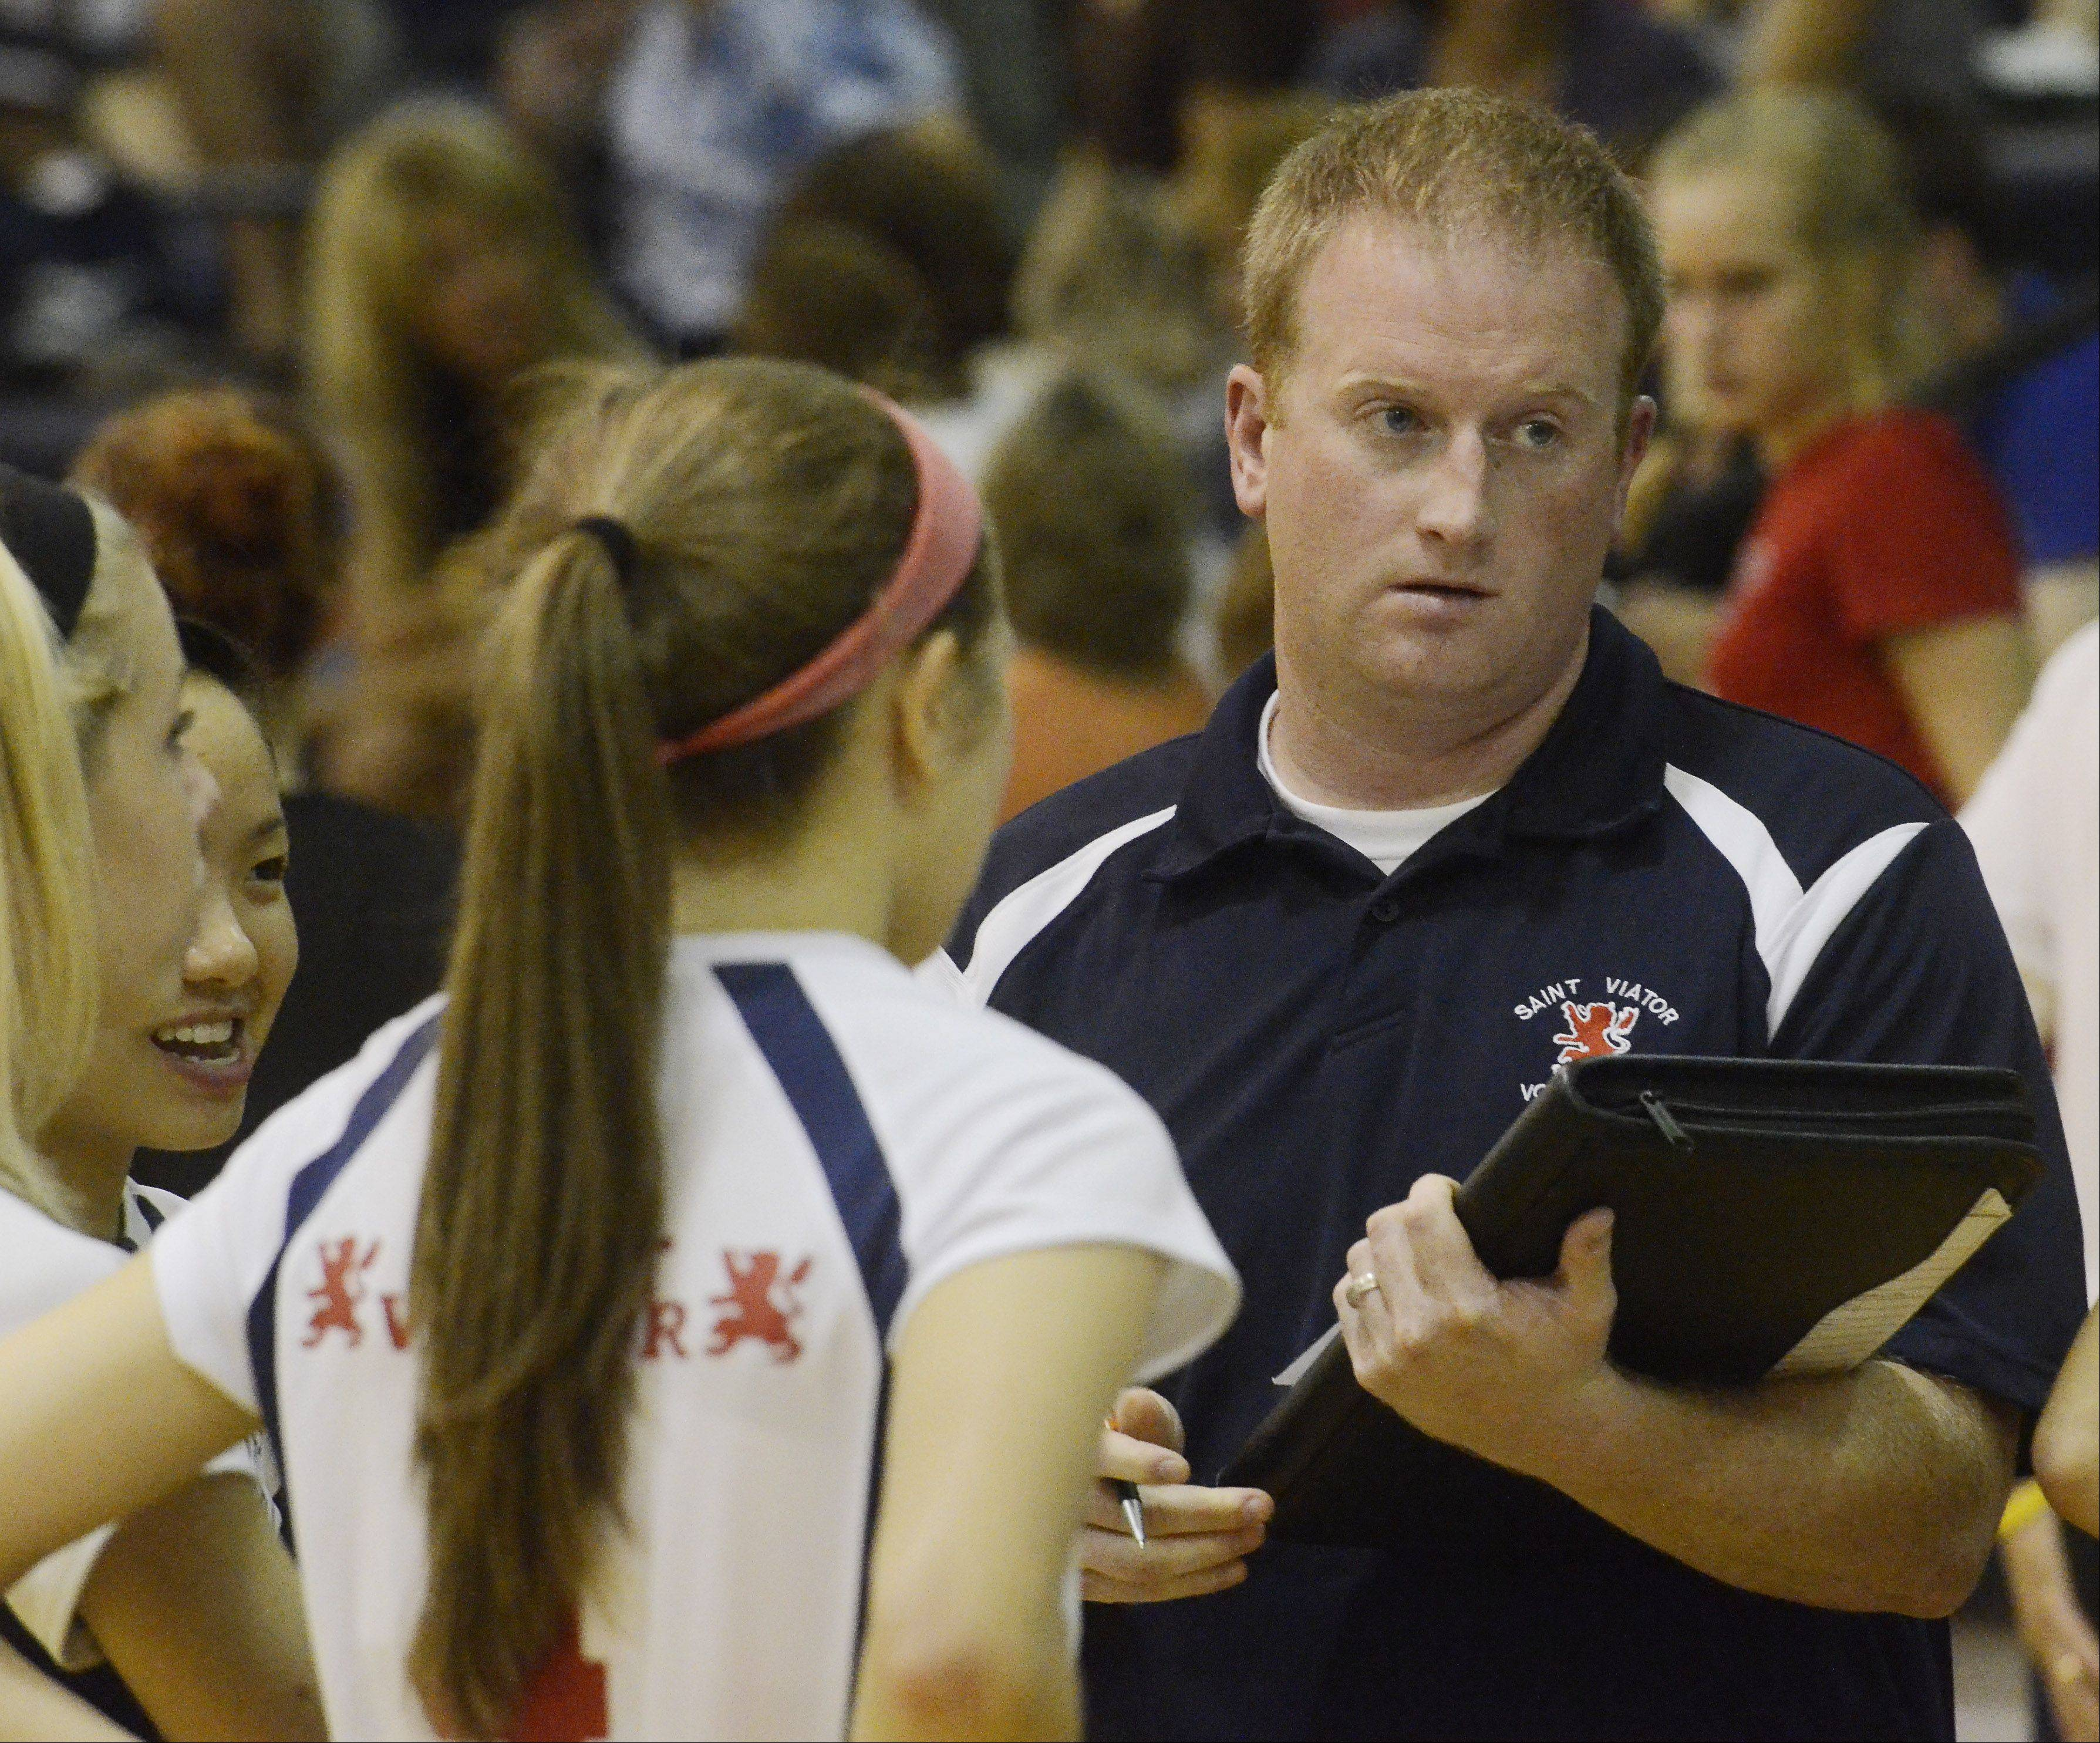 St. Viator girls volleyball coach Charlie Curtin talks to his team between games during Wednesday's match against Resurrection.